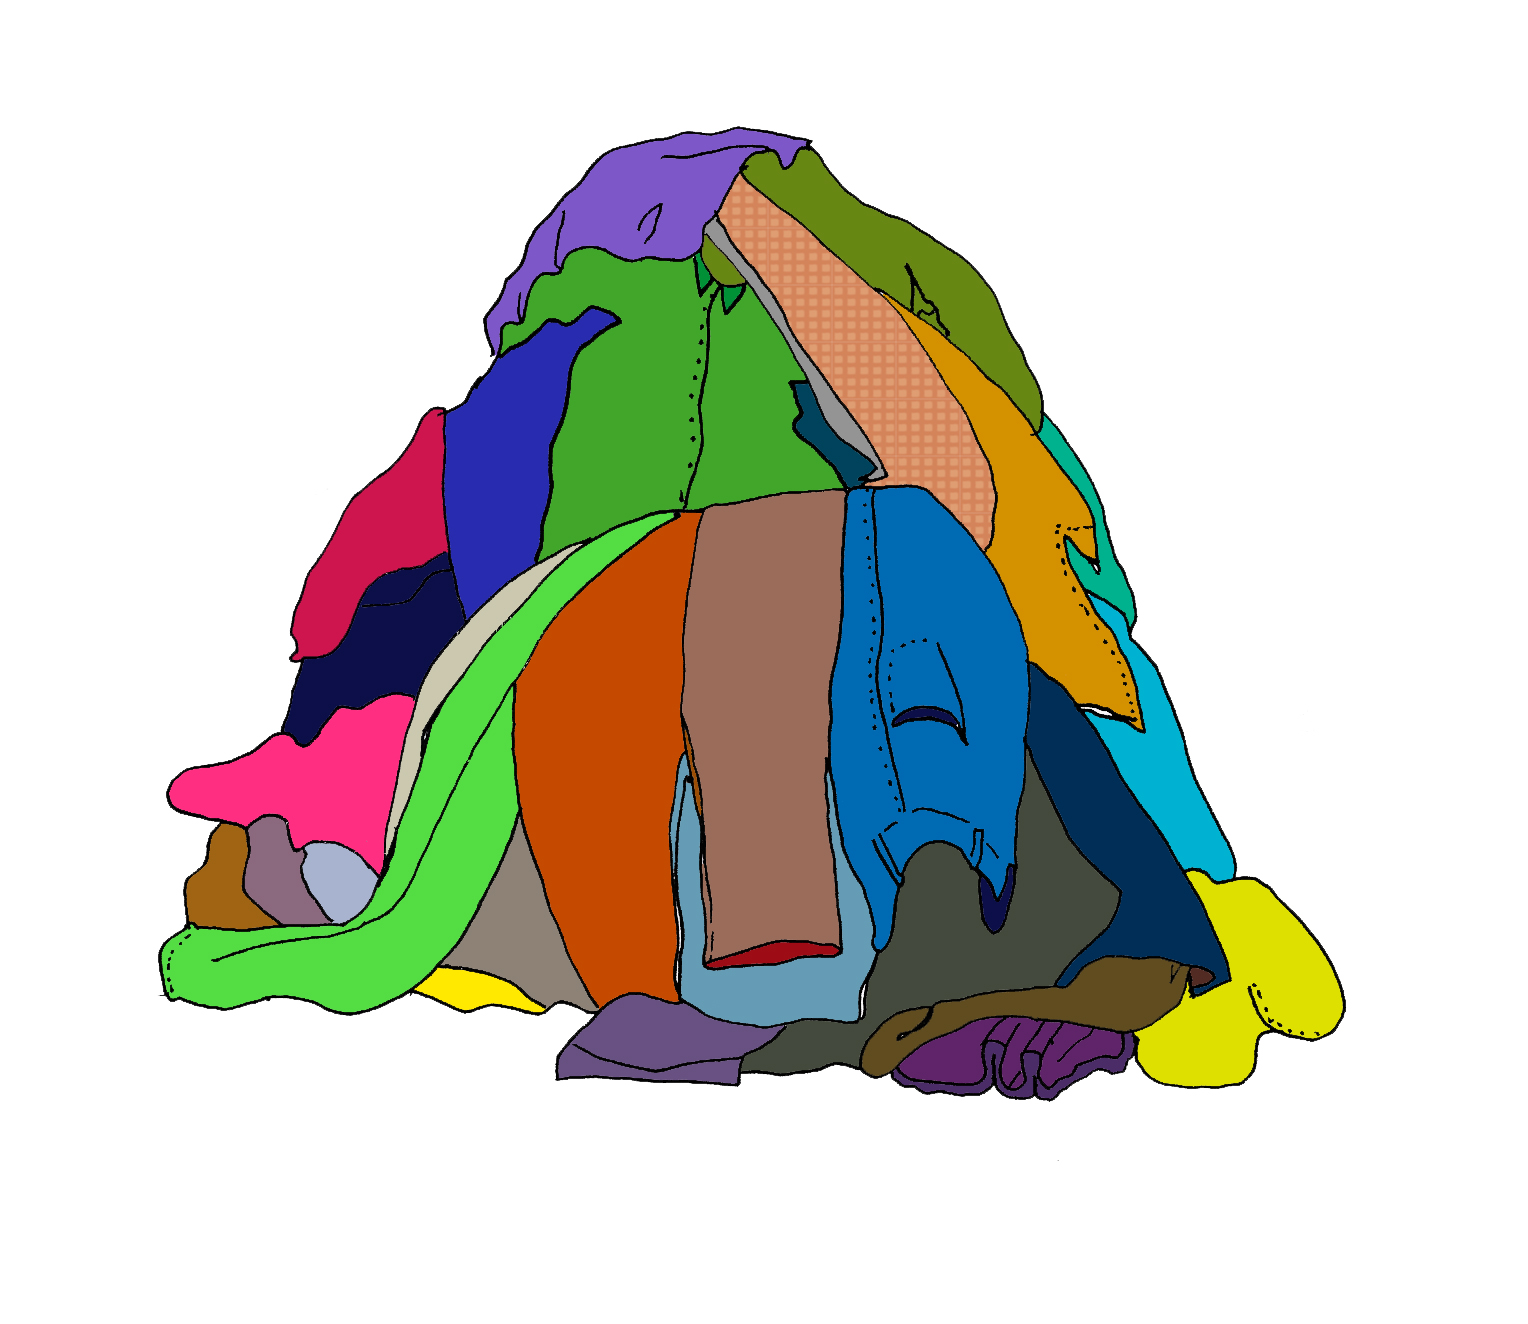 jpg transparent stock Pile of clothes clipart. Free download best